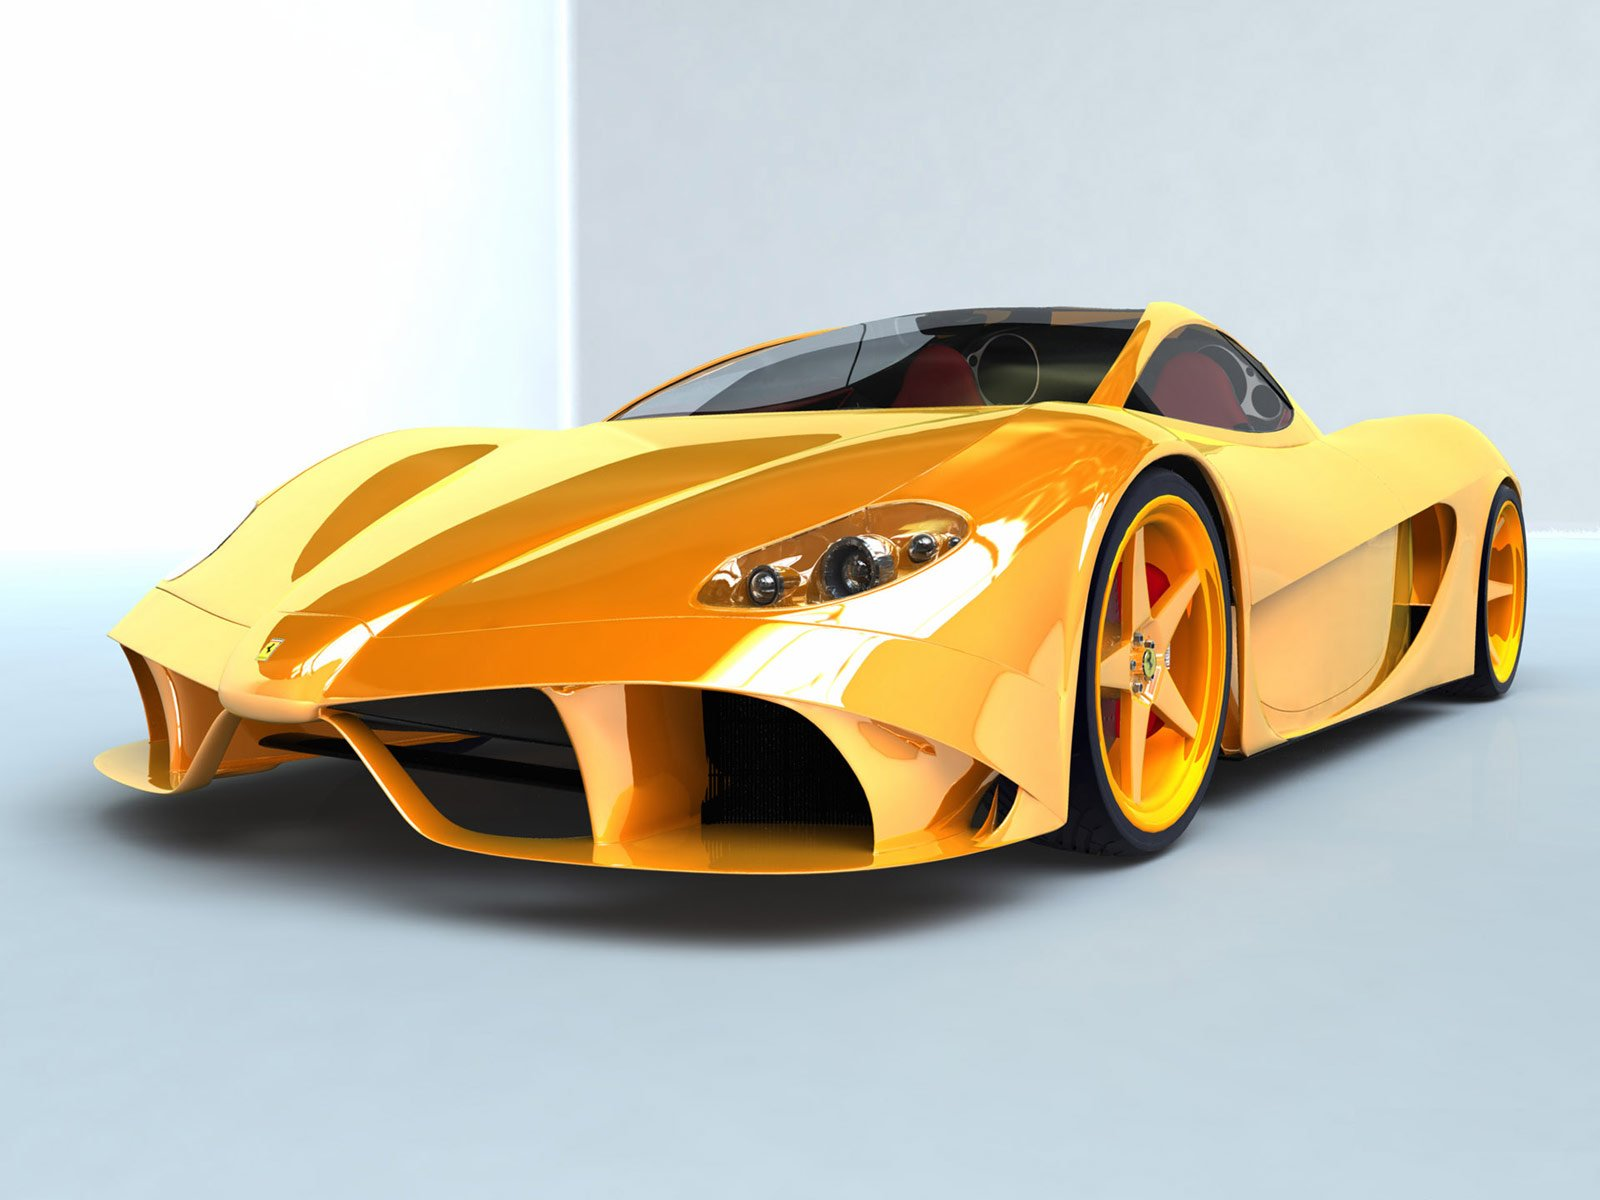 http://3.bp.blogspot.com/-Iaf5sj3JTpc/Tm9IDgGfLOI/AAAAAAAAcrg/4vIvYg3-hlI/s1600/latest+cars+wallpapers+3.jpg